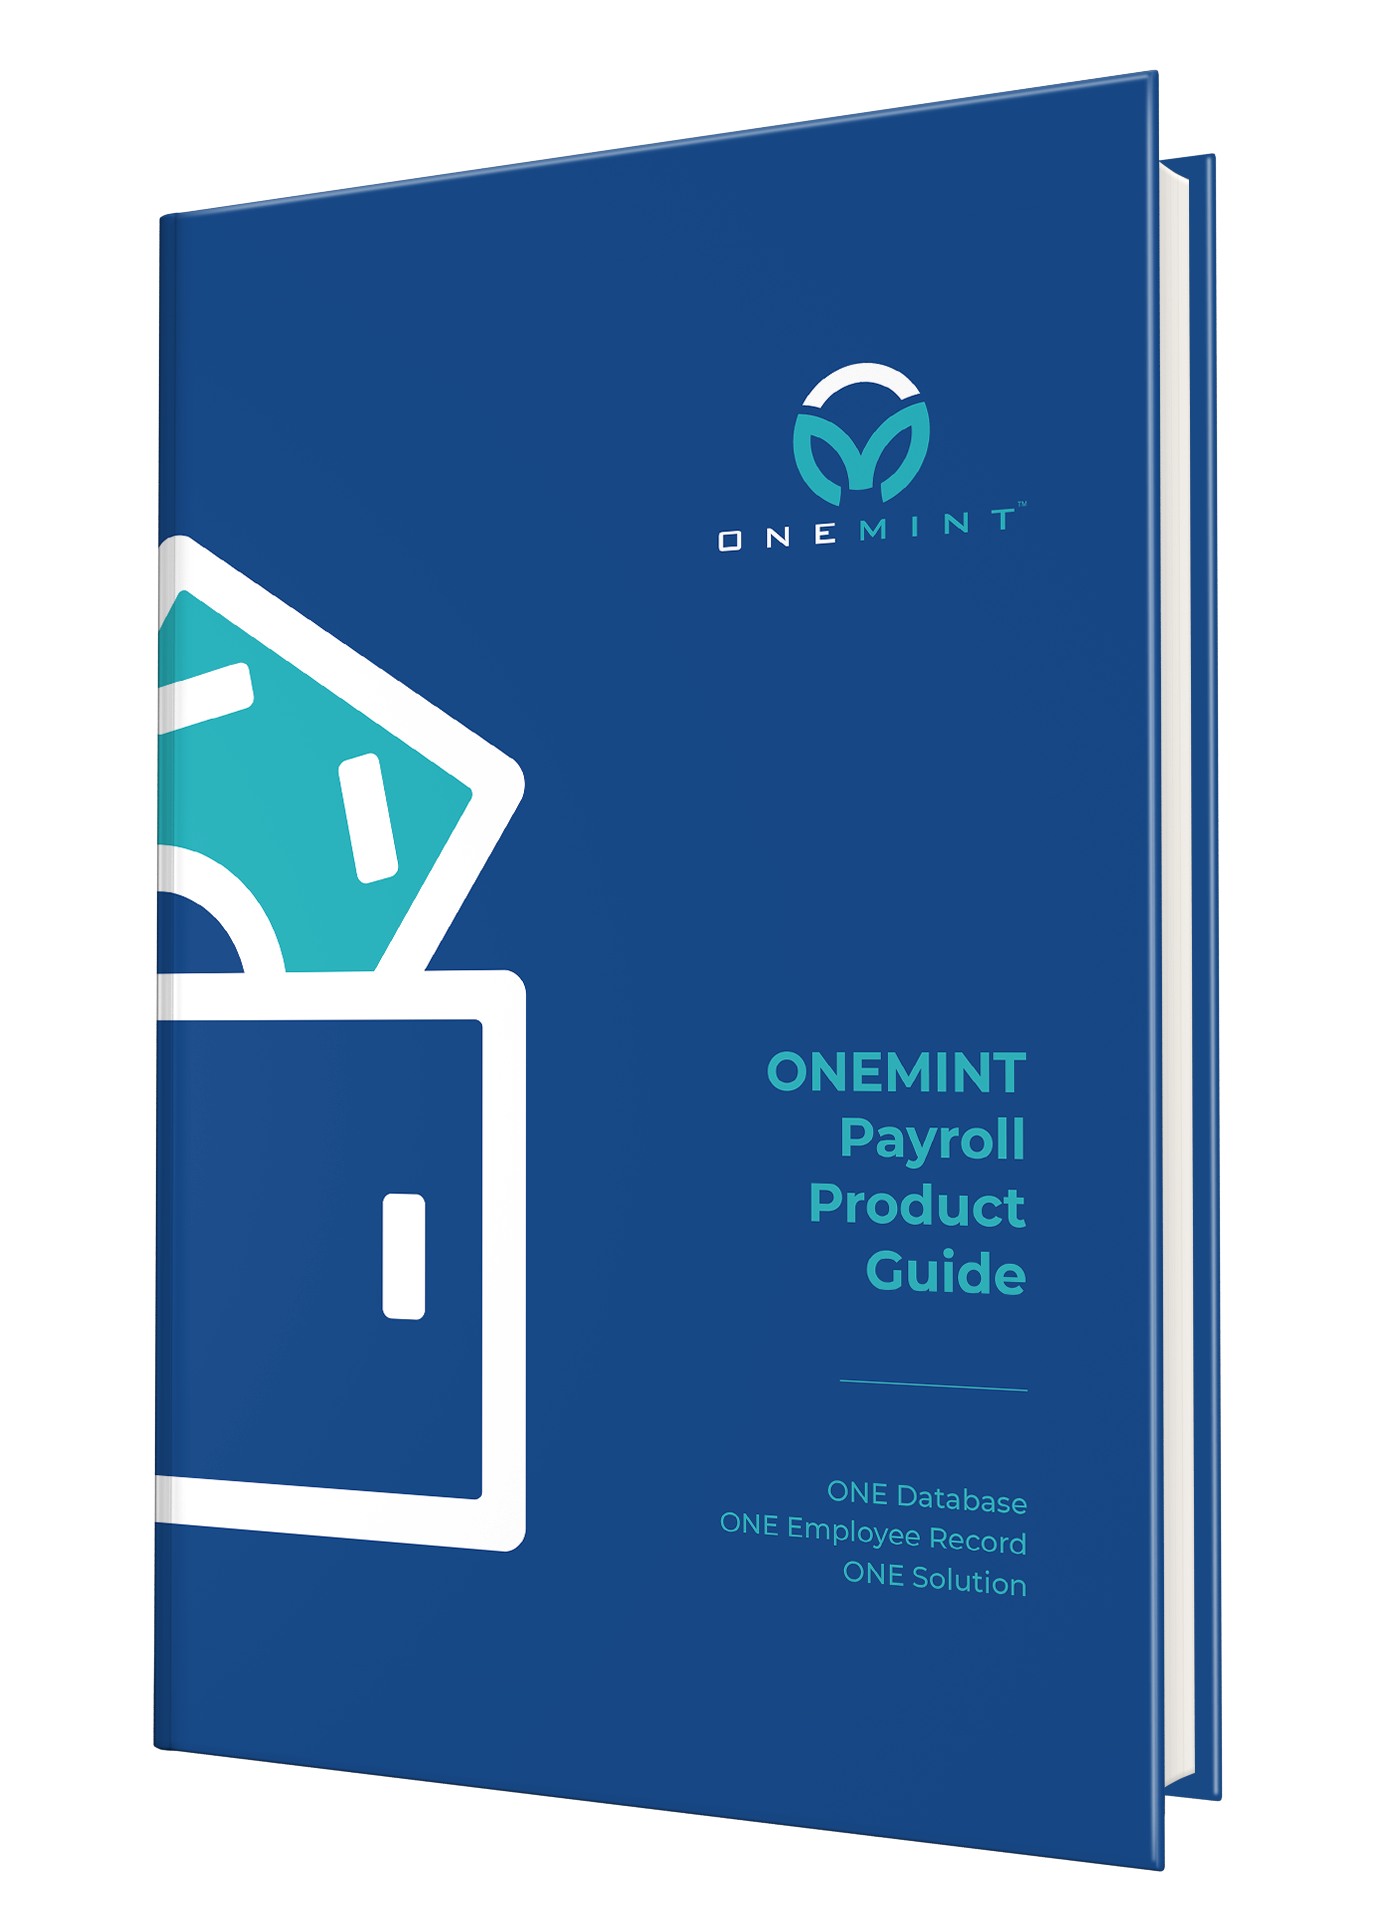 onemint-payroll-product-guide-2018